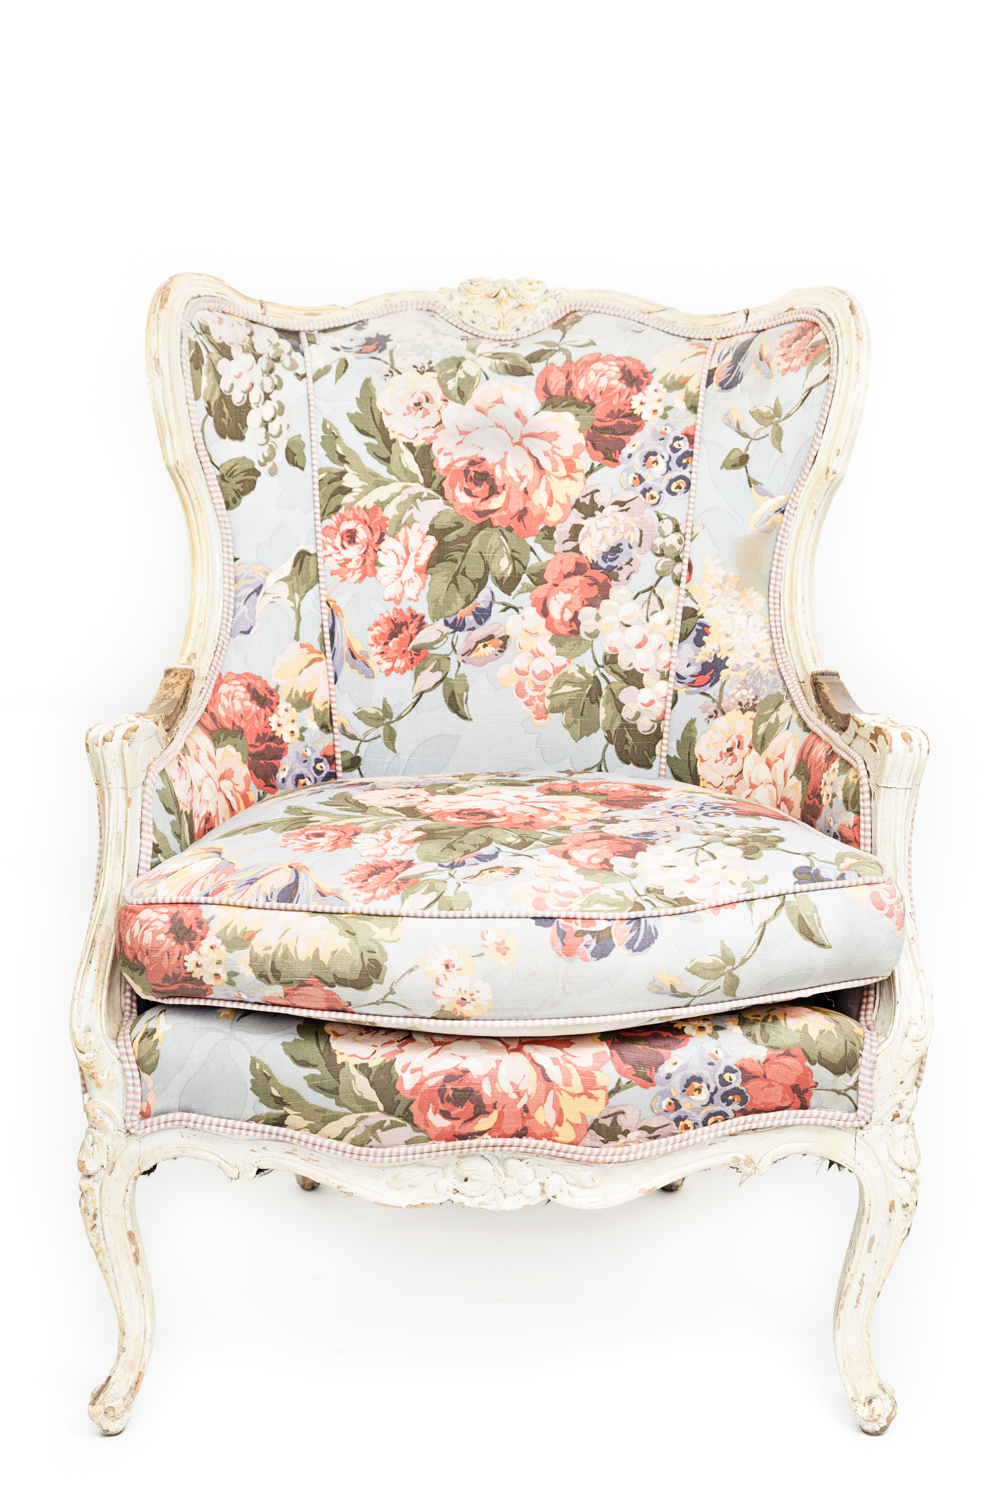 Wedding vintage rental armchair with pink and green and red floral pattern on a light blue fabric by CC Vintage Rentals in San Diego, #WeddingMinimalismProject by Cavin Elizabeth Photography